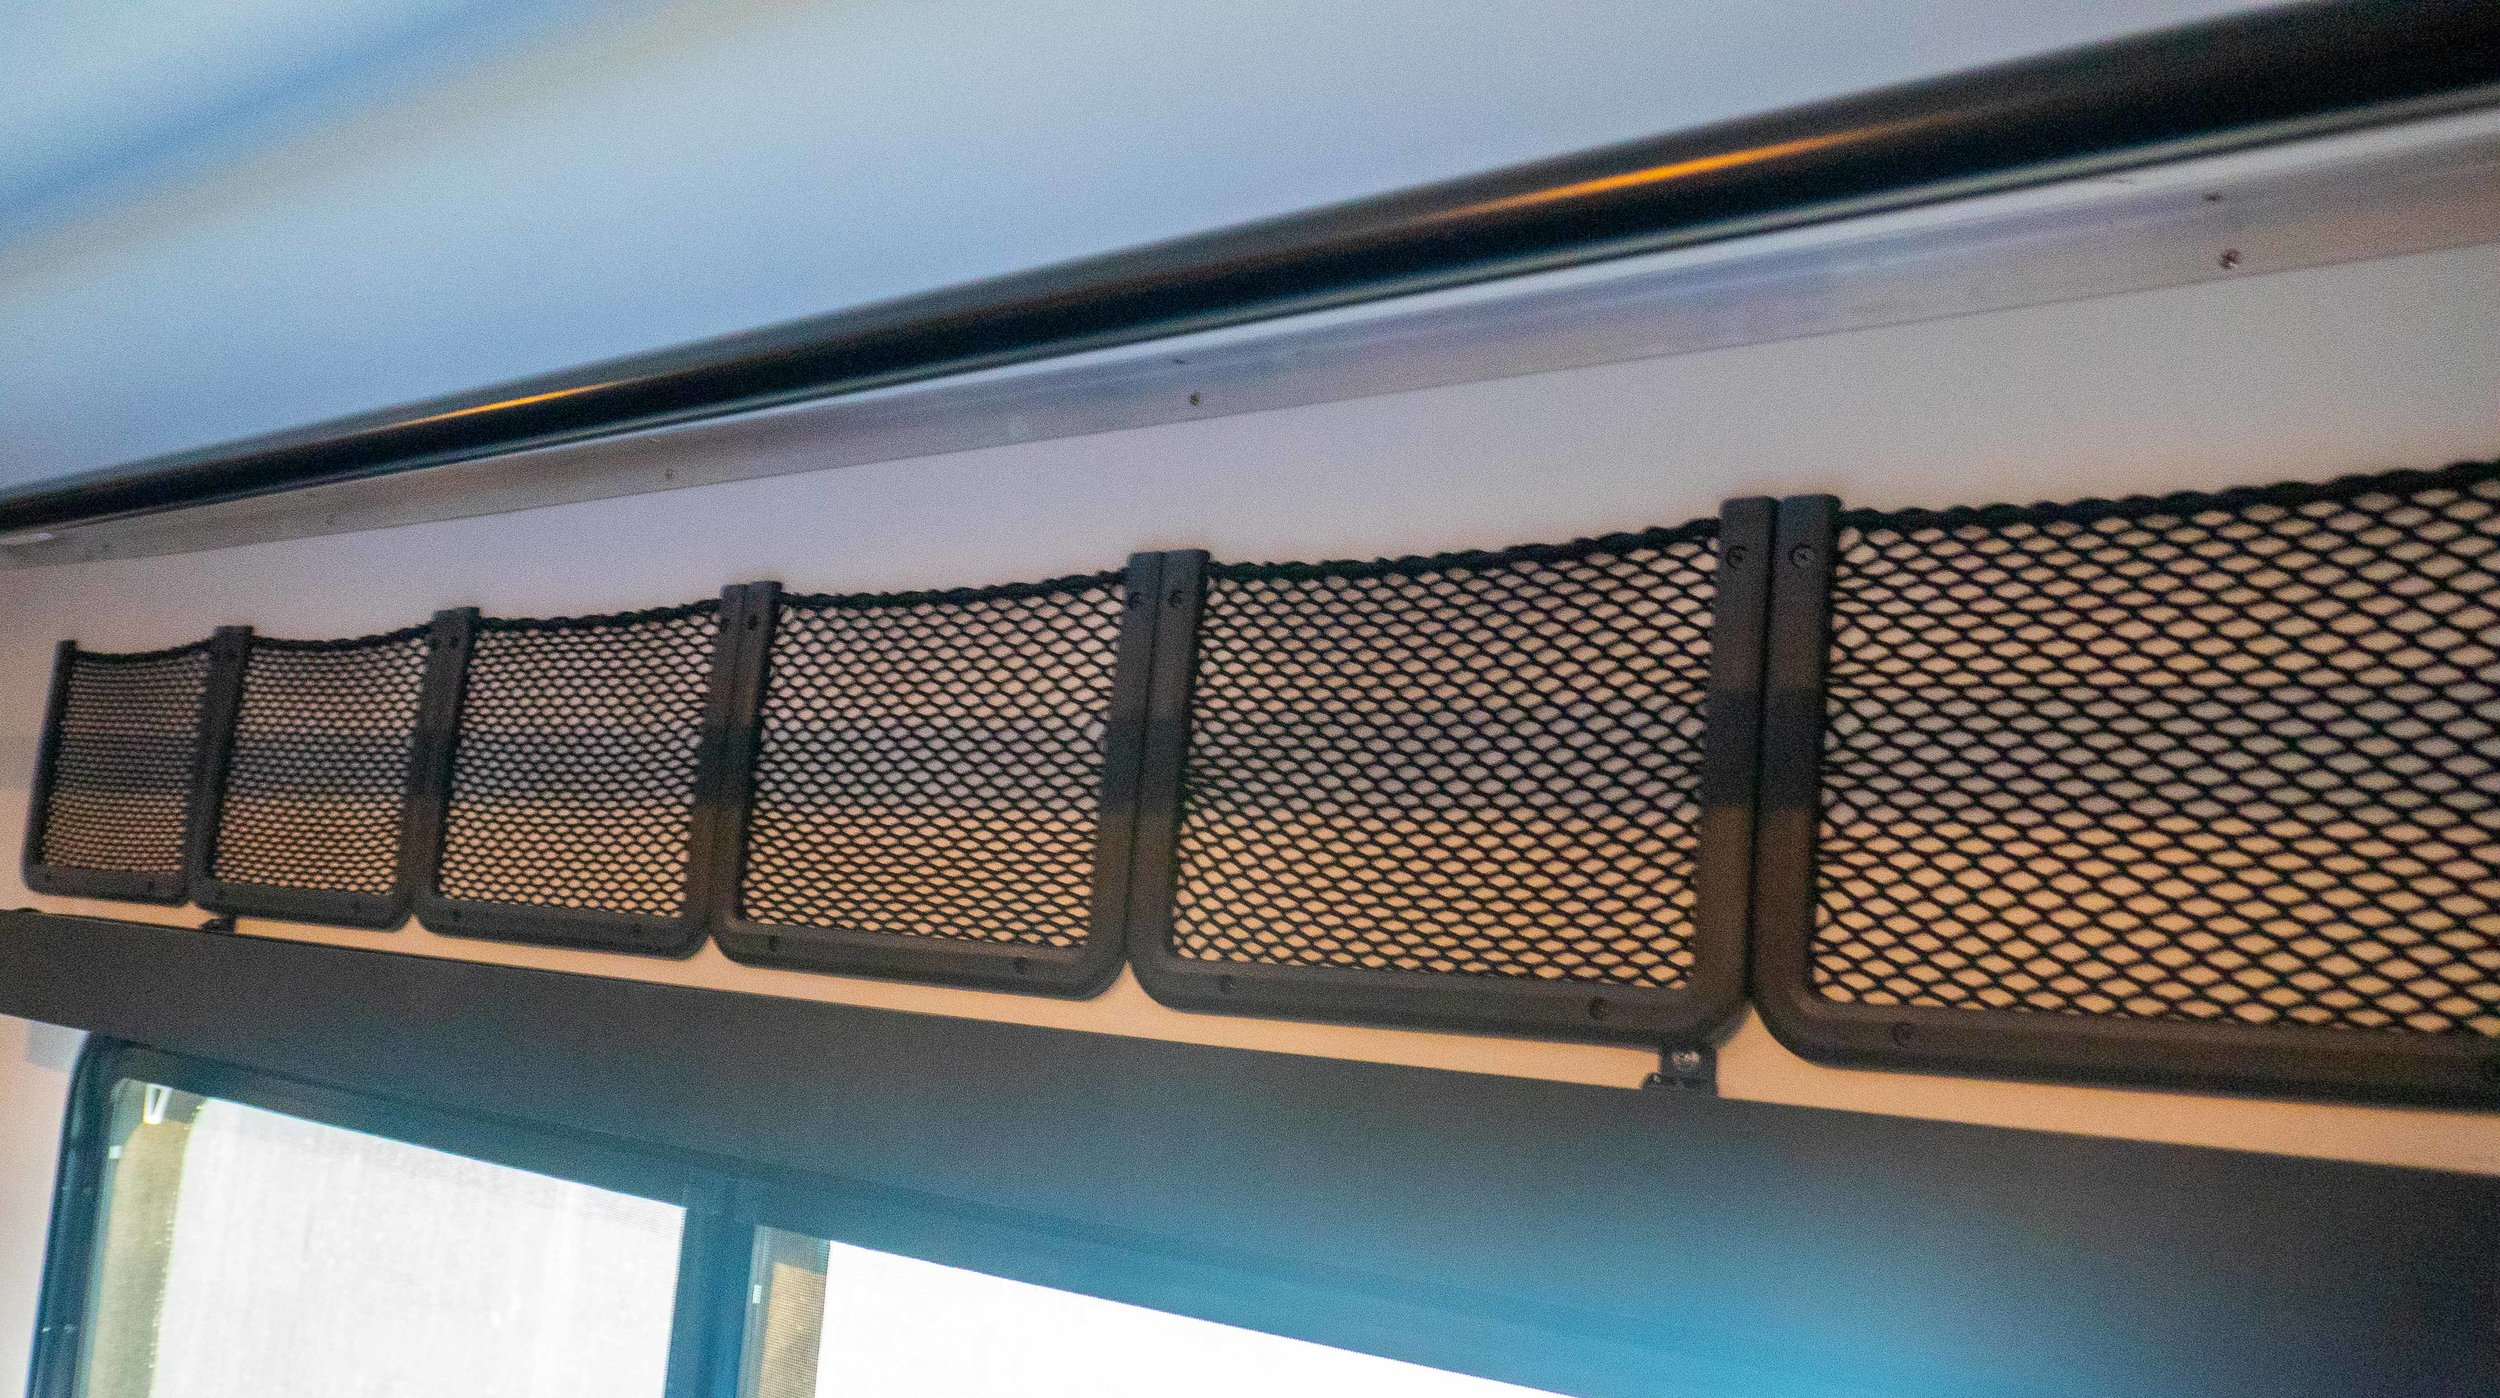 extensive mounted storage netting above bed